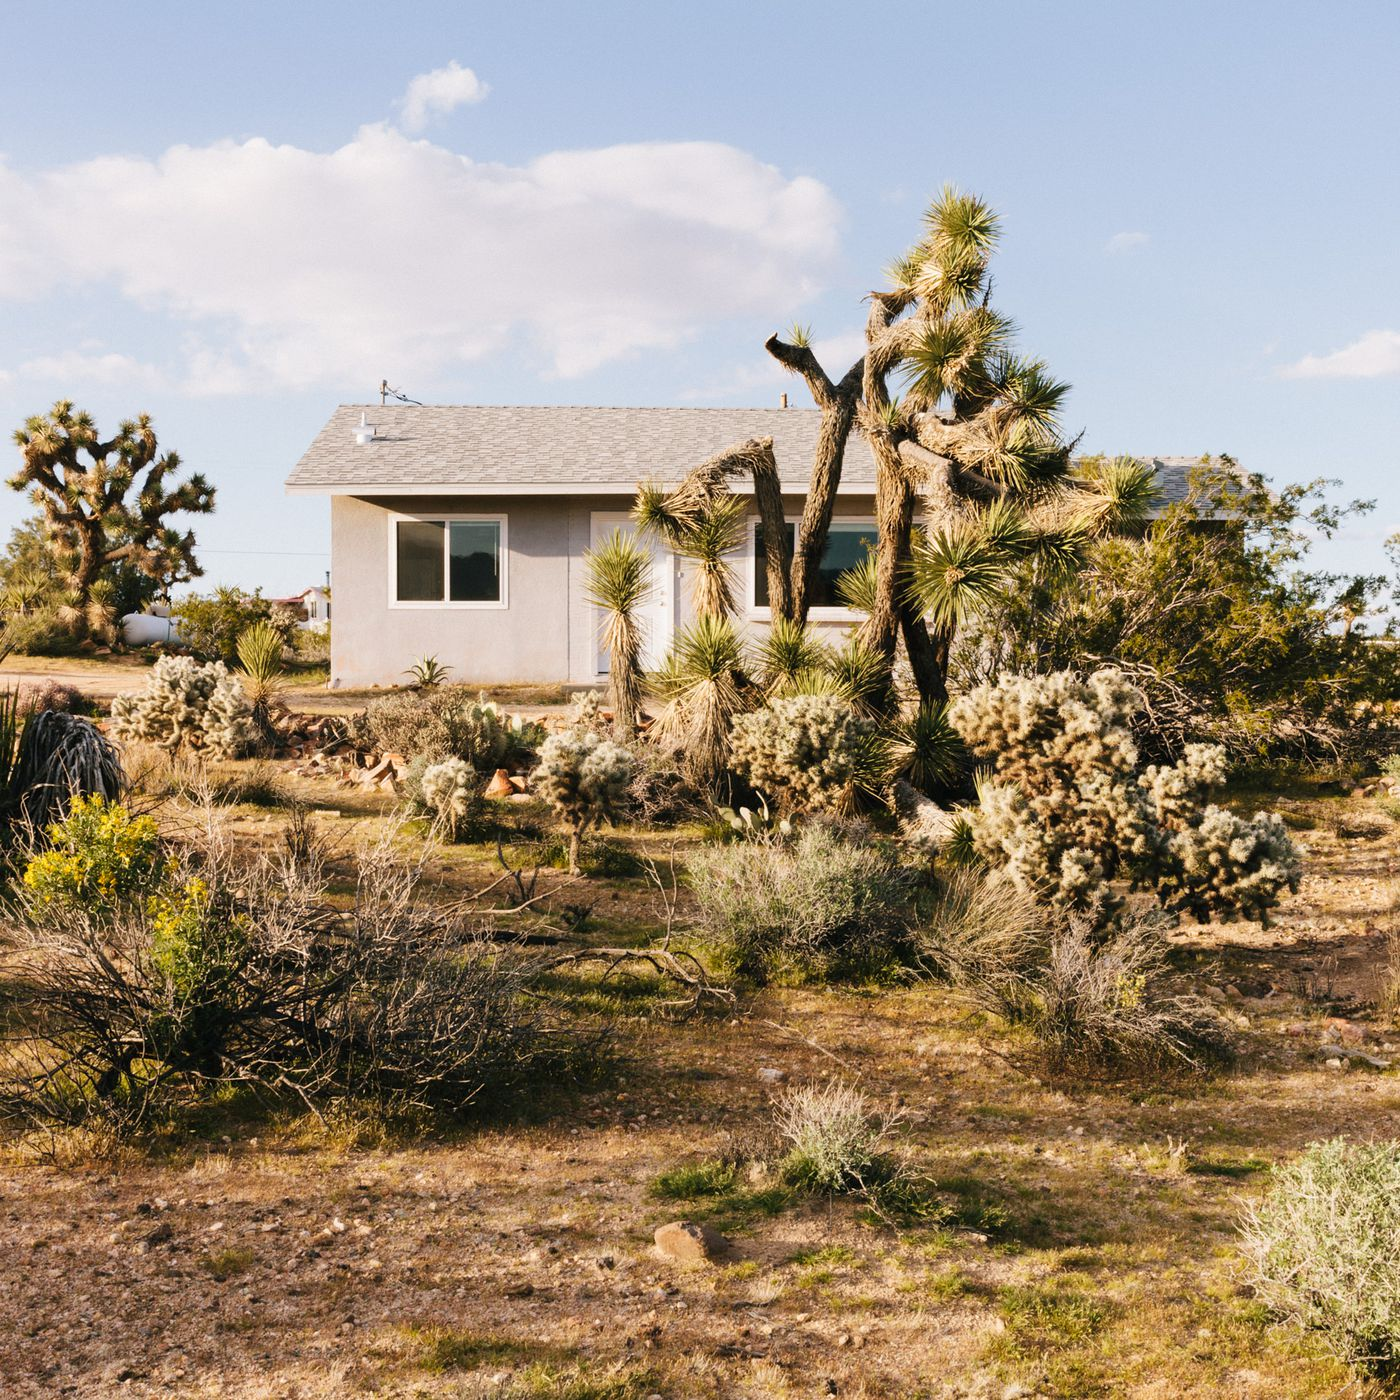 Joshua Tree midcentury home be es writer s refuge Curbed